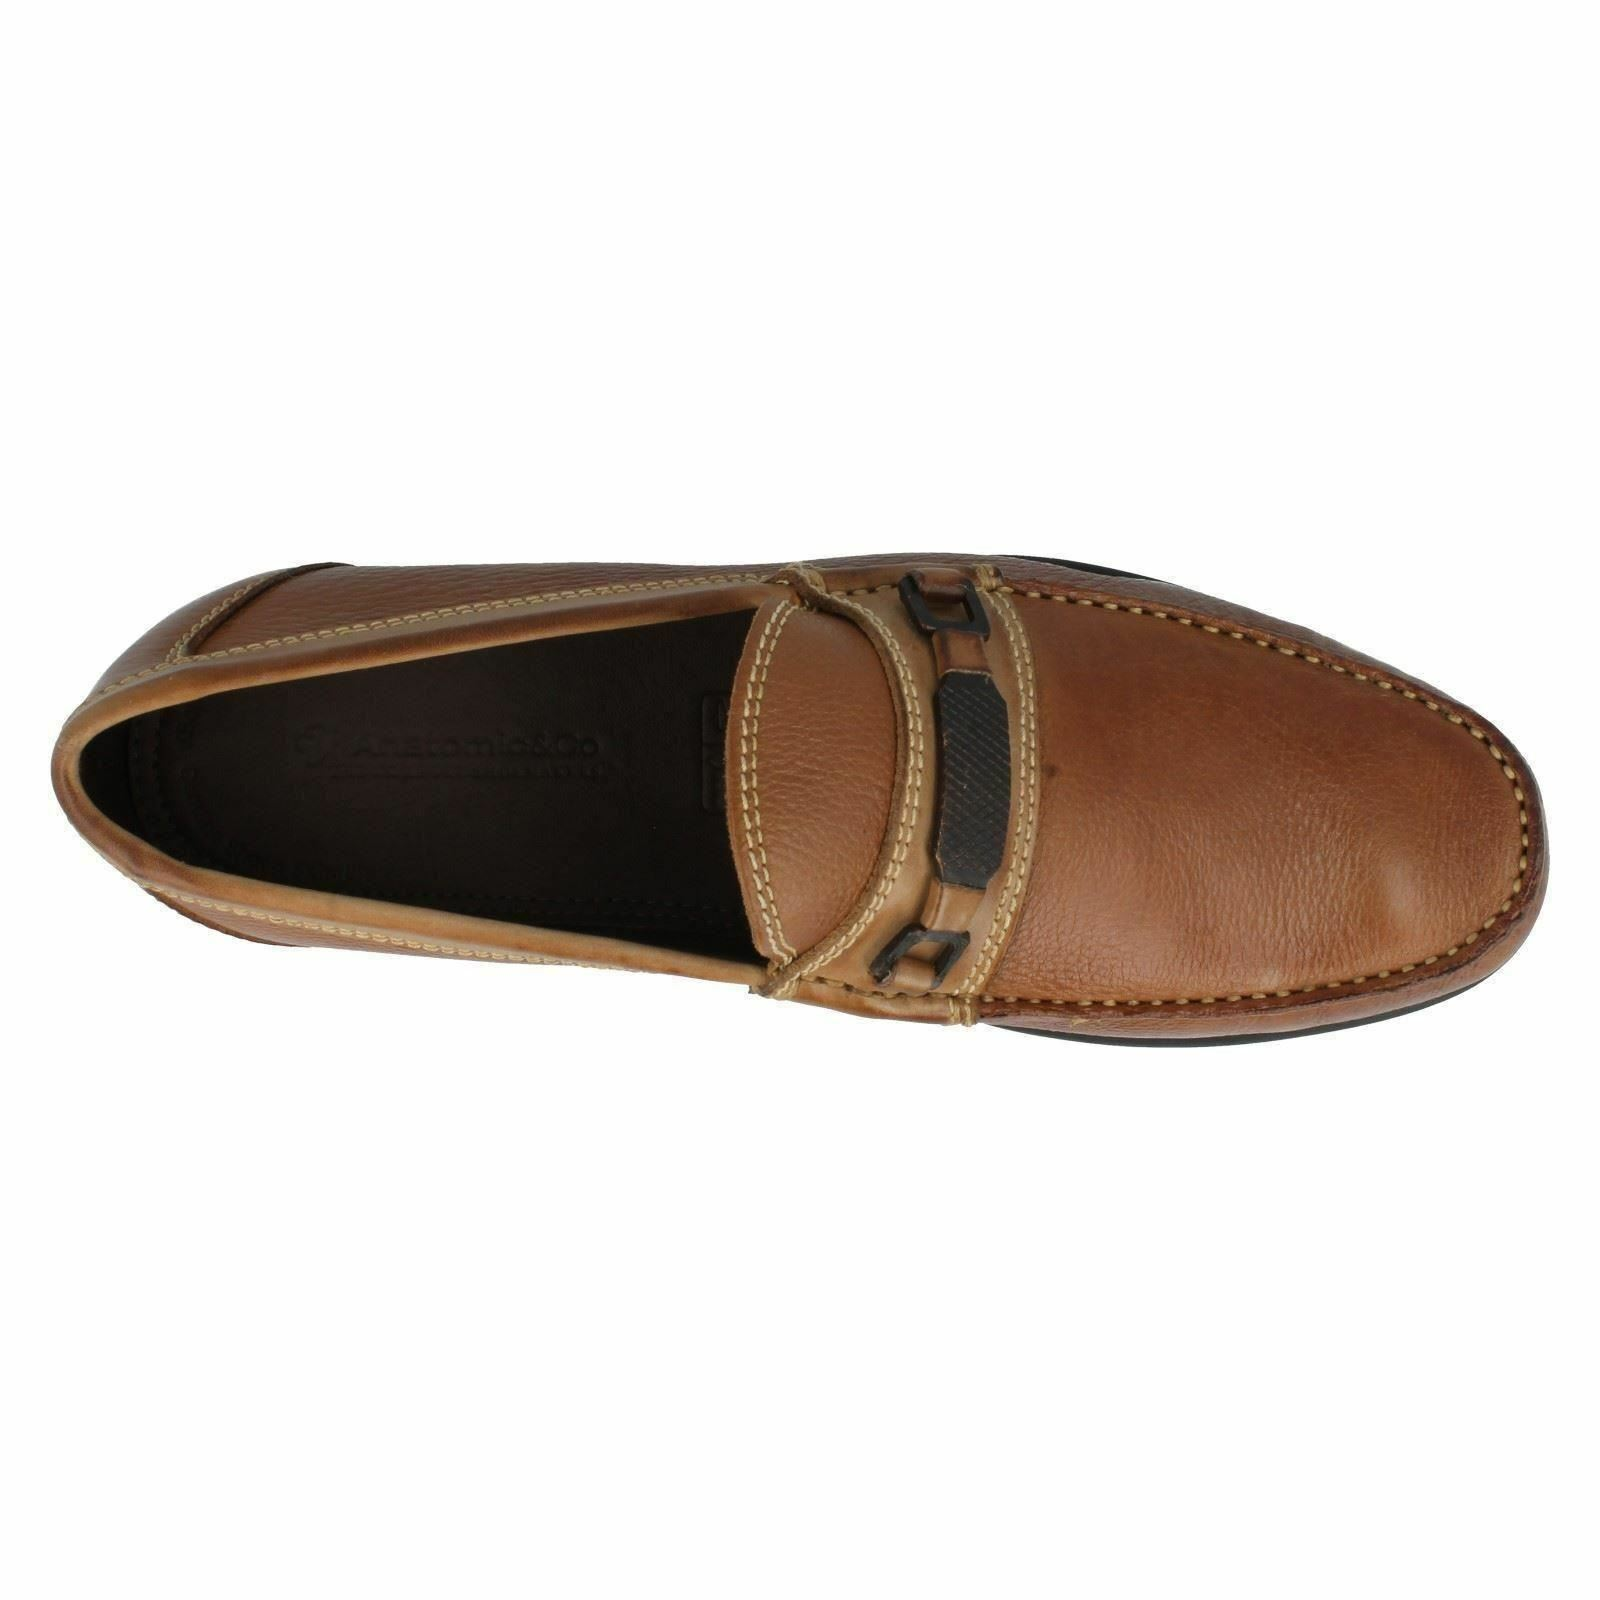 Anatomic & Co Style Mens Slip On Shoe Style Co - Lins 74a08e